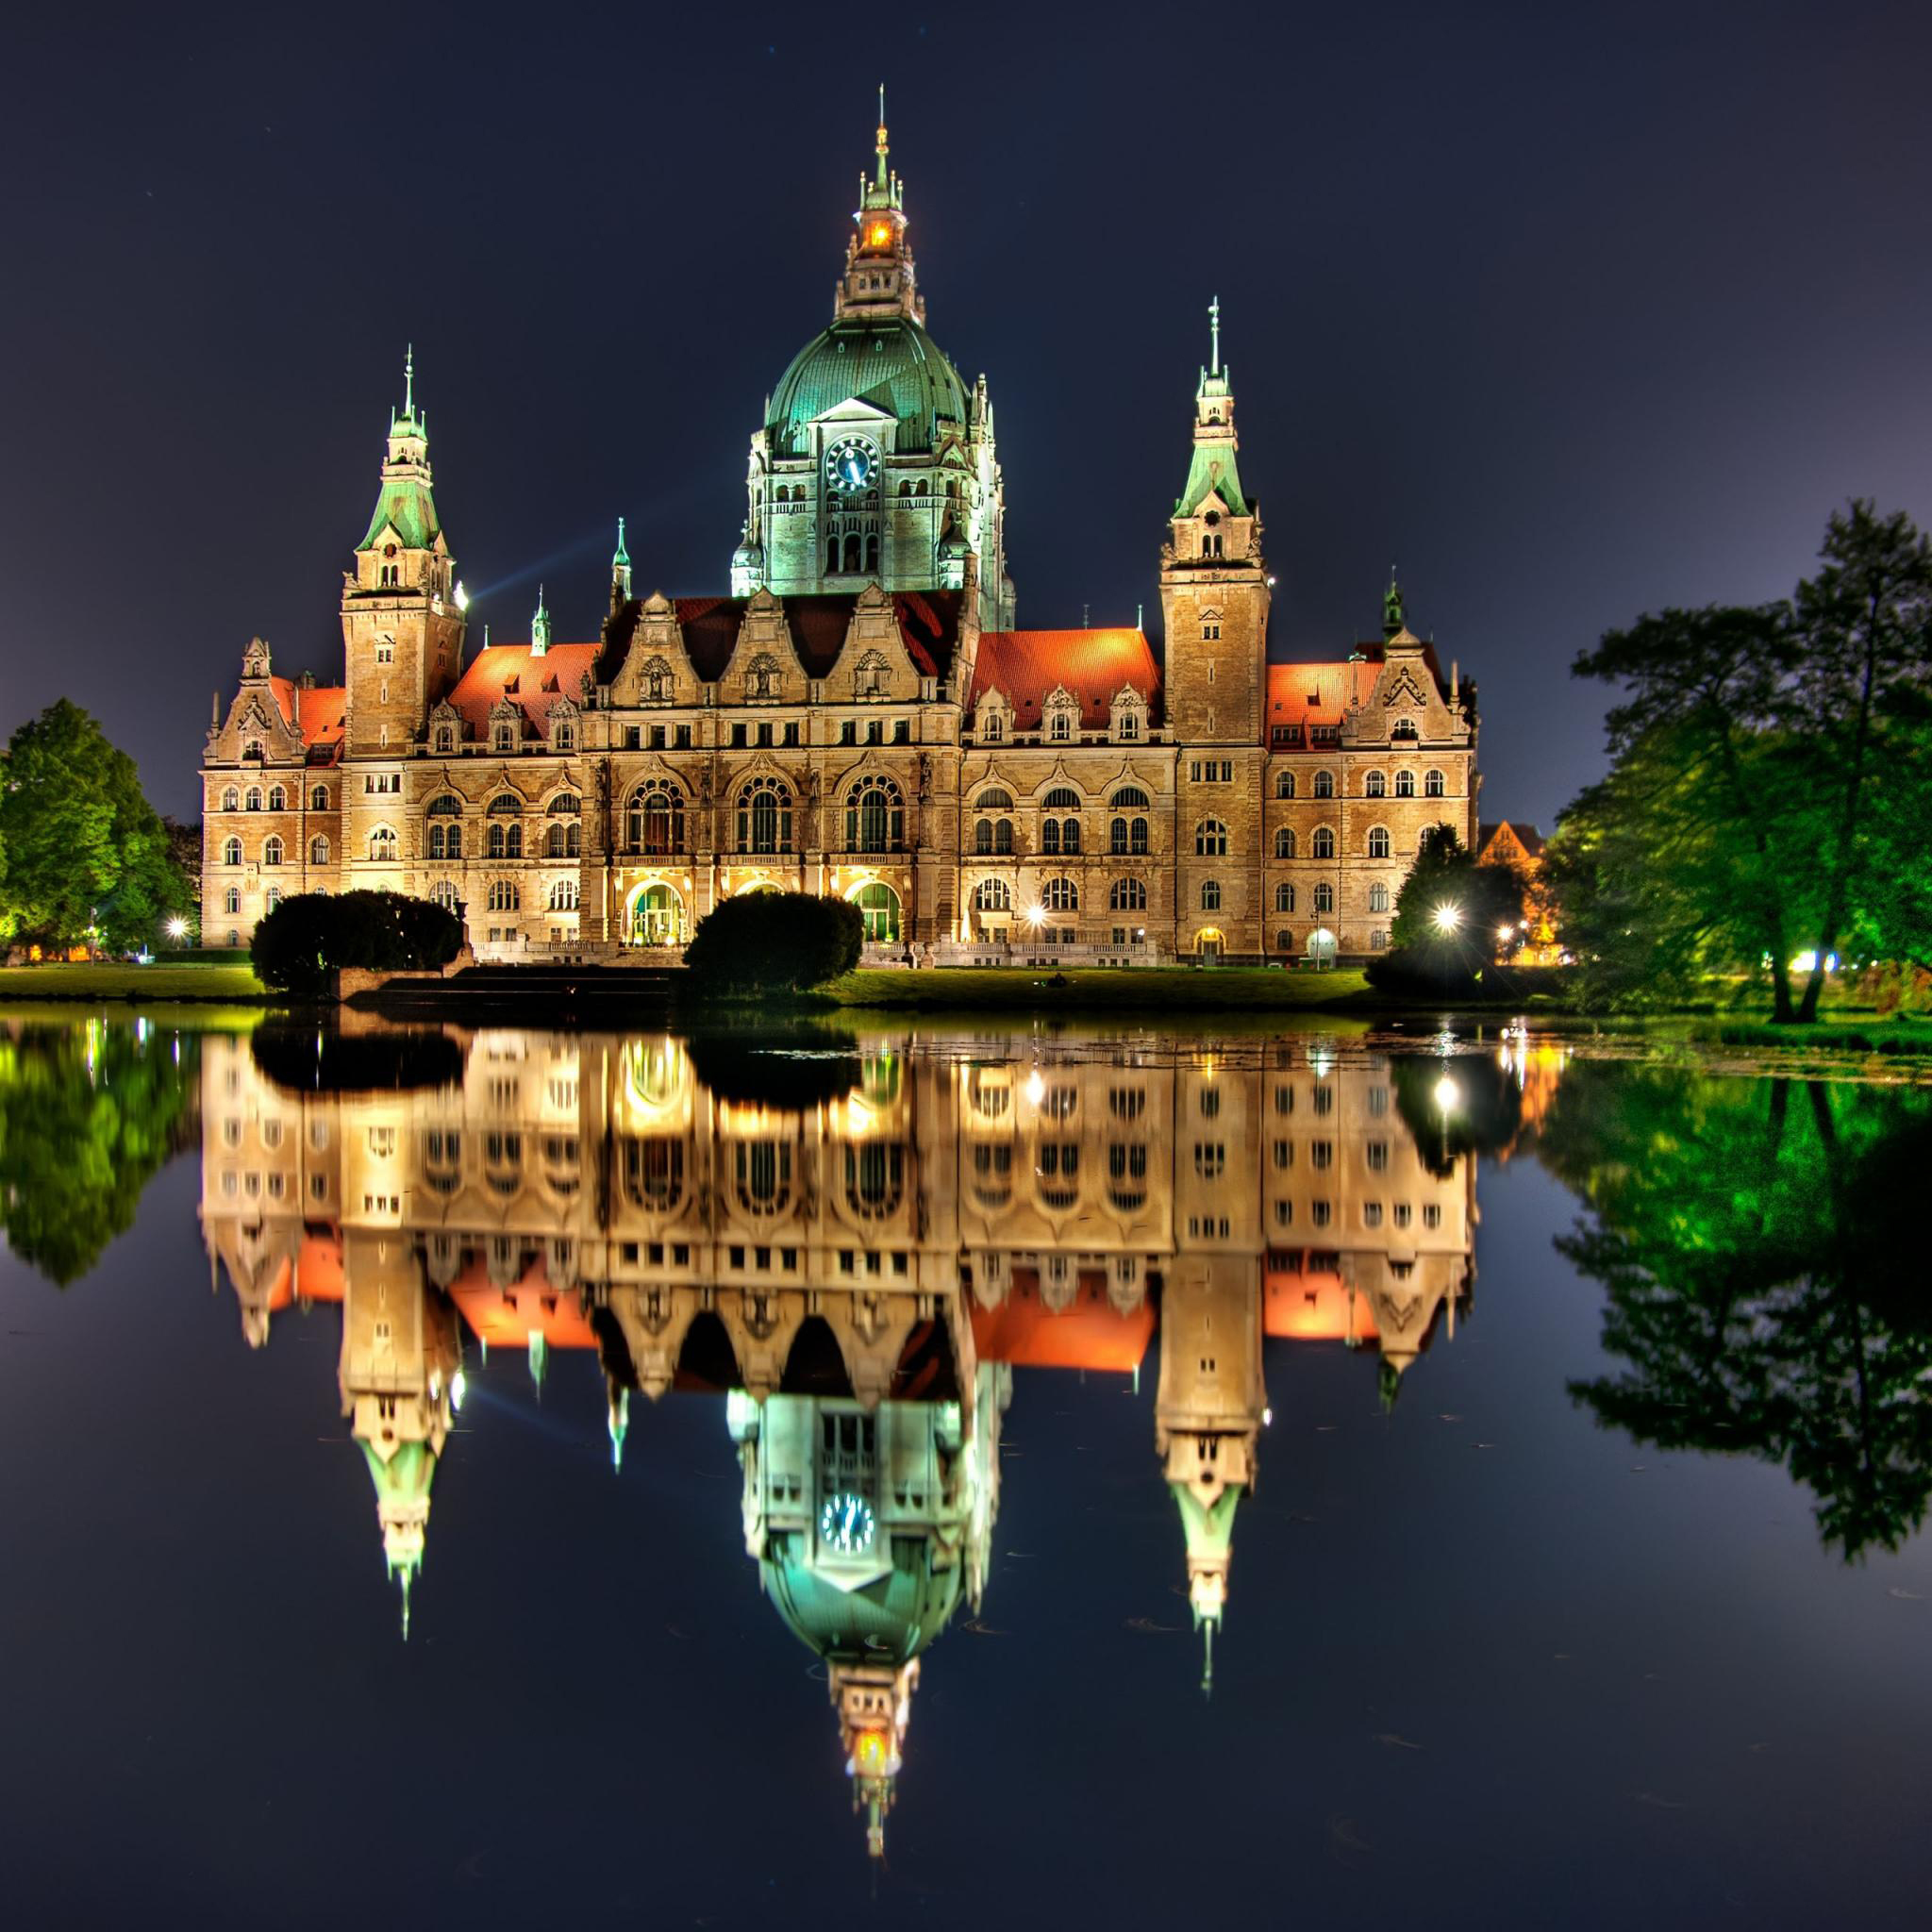 Night Lights Architecture Germany 3Wallpapers iPad Retina Night Lights Architecture Germany   iPad Retina